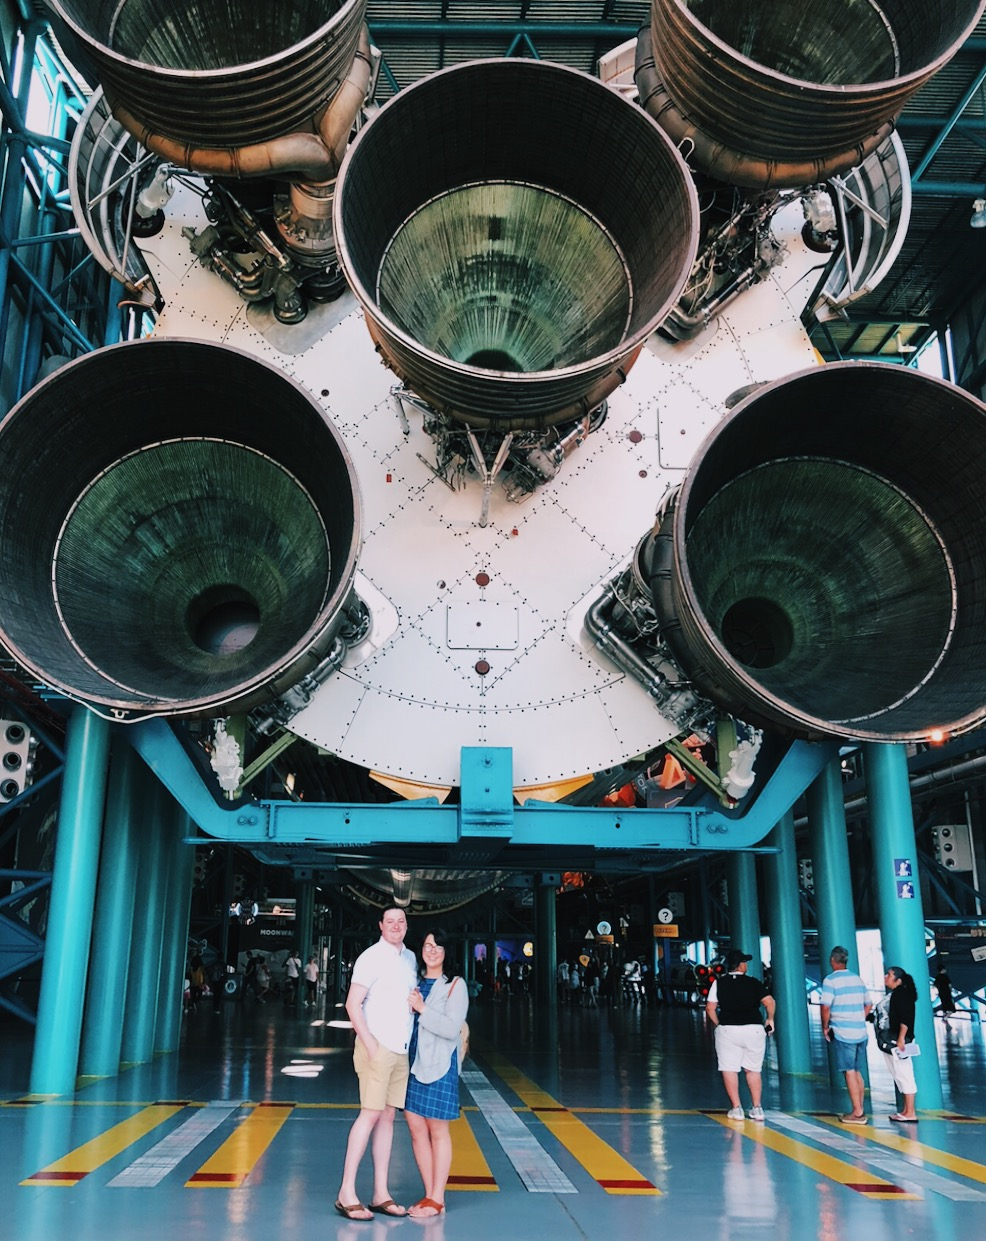 Chance and I infront of Saturn Five. The quality of the picture isn't the best due to trying to fit all of this massive shuttle into the picture.